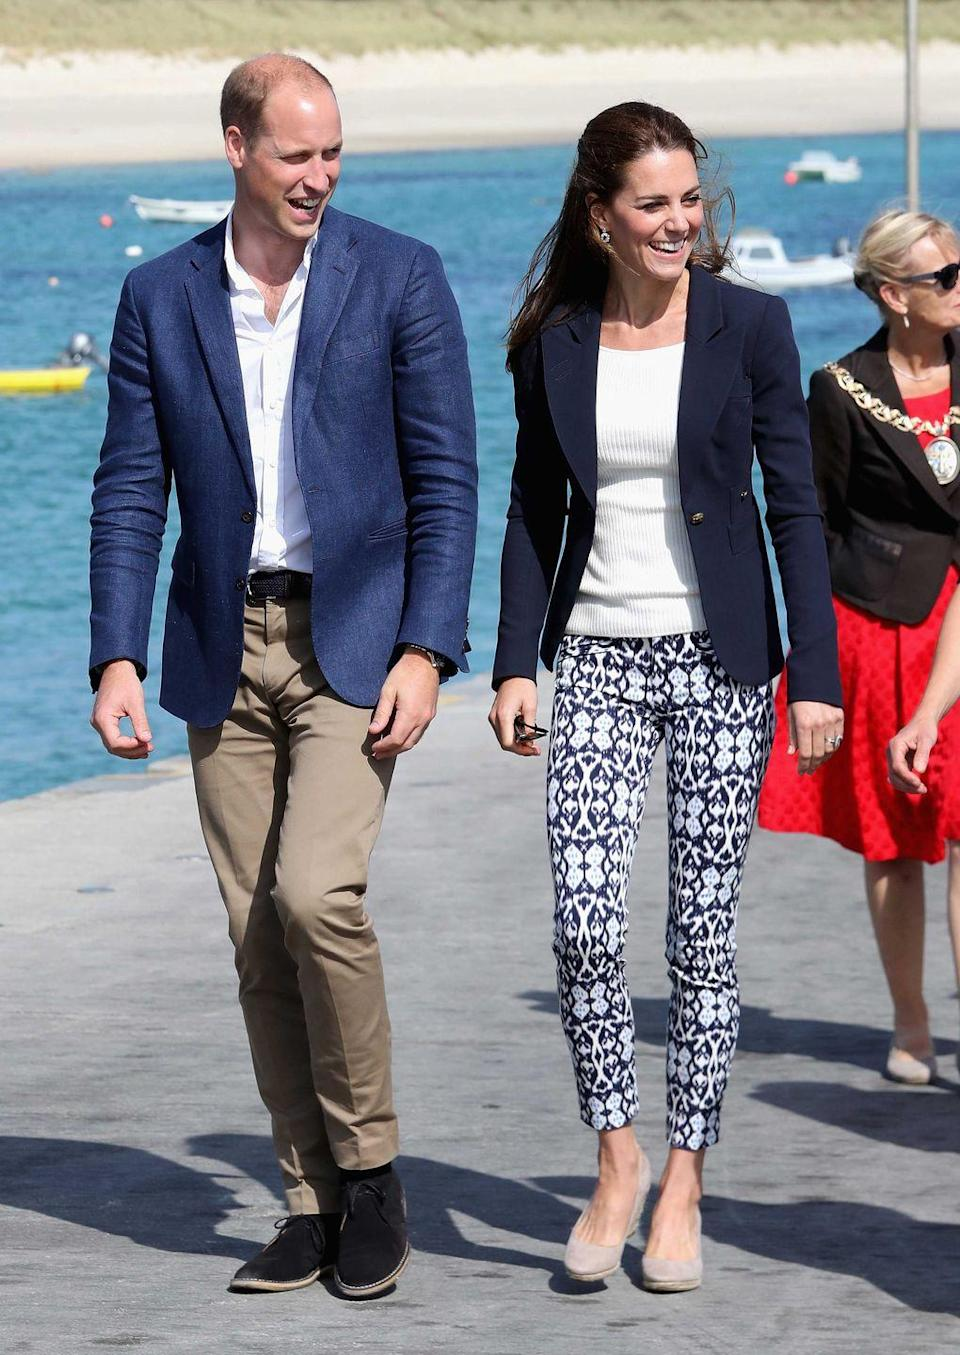 "<p>Kate's pants are from the <a href=""http://www.gap.com/browse/product.do?pid=130046282&vid=1&locale=en_US&kwid=1&sem=false&sdkw=bi-stretch-skinny-ankle-pants-P130046&sdReferer=https%3A%2F%2Fwww.google.com%2F"" rel=""nofollow noopener"" target=""_blank"" data-ylk=""slk:Gap"" class=""link rapid-noclick-resp"">Gap</a>. Yes, you read that right. (Prince William and the Duchess were visiting the Island of St Martin's in England's Scilly Isles.)</p>"